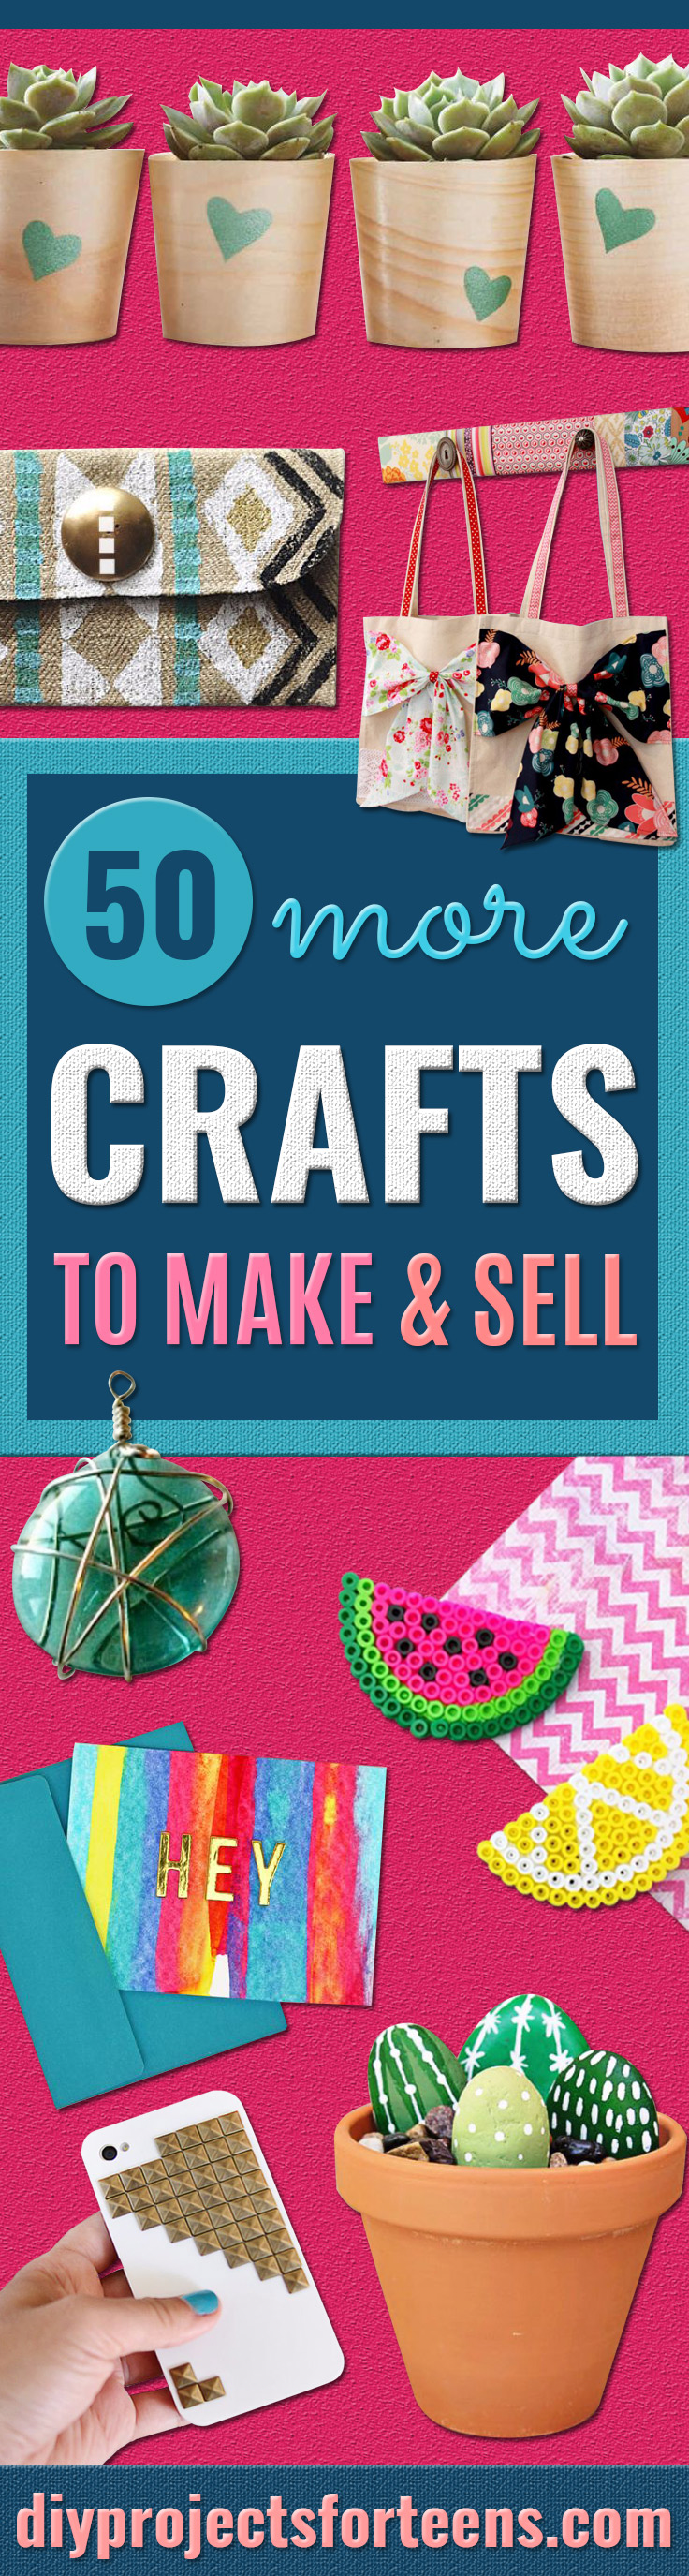 Crafts for Teens to Make and Sell - Cheap and Easy DIY Ideas To Make For Extra Money - Best Things to Sell On Etsy, Dollar Store Craft Ideas, Quick Projects for Teenagers To Make Spending Cash - DIY Gifts, Wall Art, School Supplies, Room Decor, Jewelry, Fashion, Hair Accessories, Bracelets, Magnets http://diyprojectsforteens.com/crafts-to-sell-teens